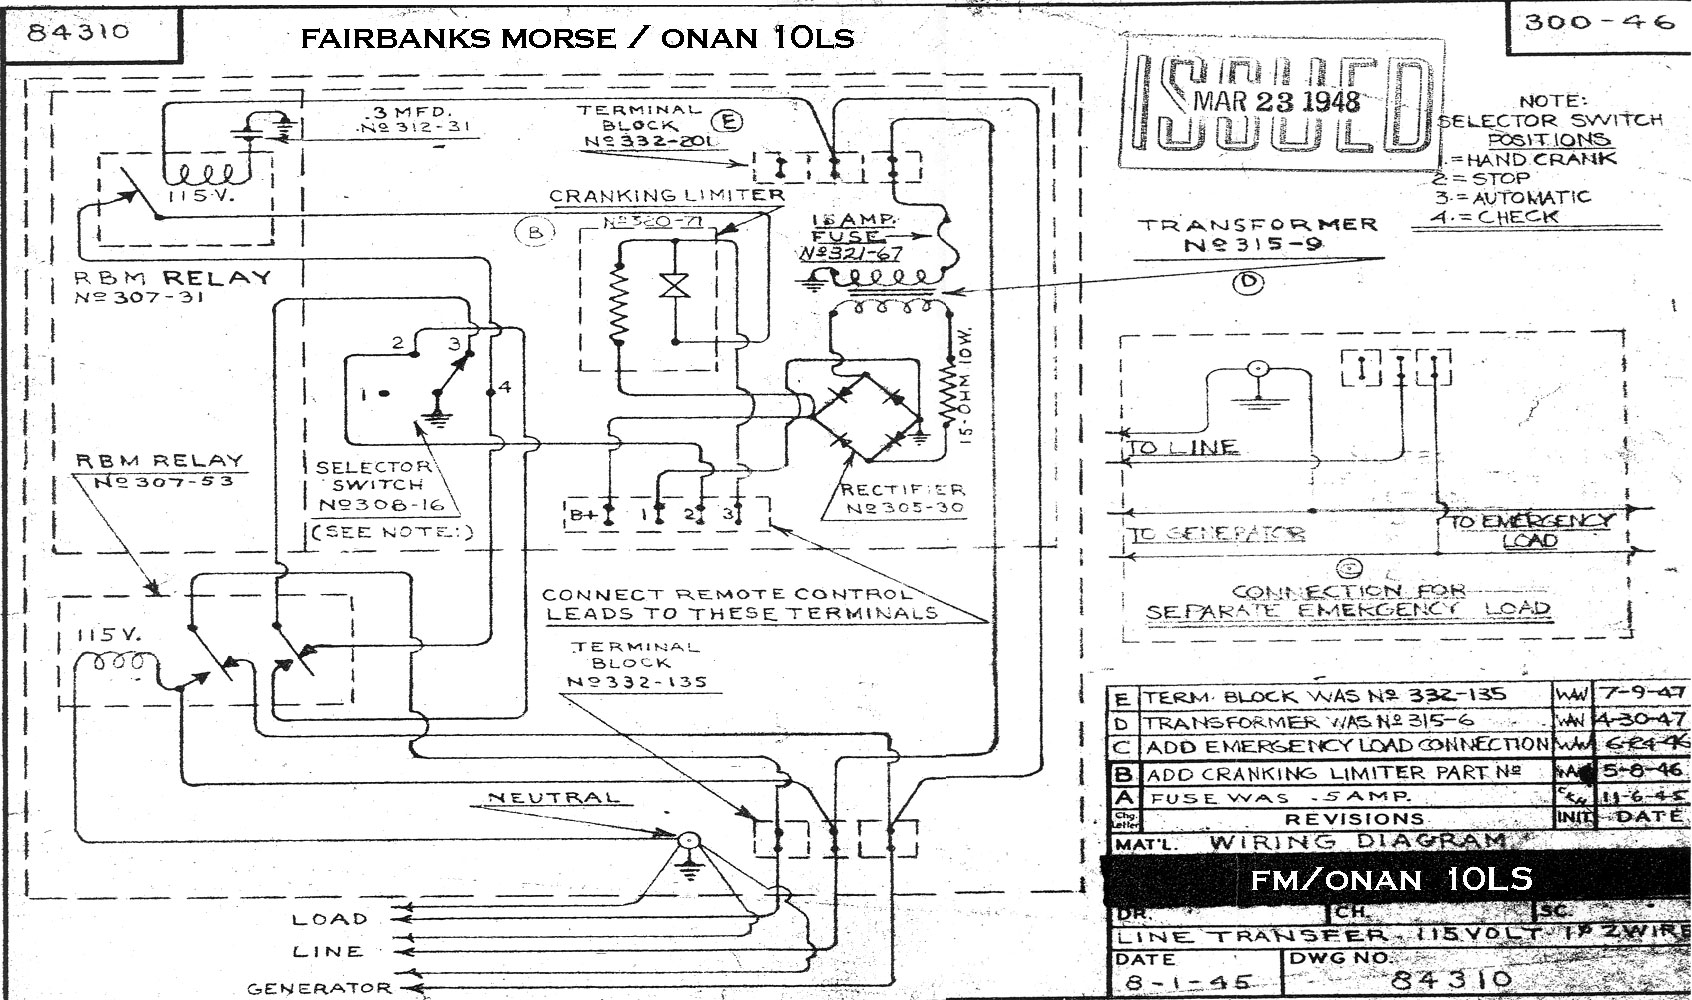 onan 4000 generator wiring diagram 1995 bluebird bus emerald 3 rv get